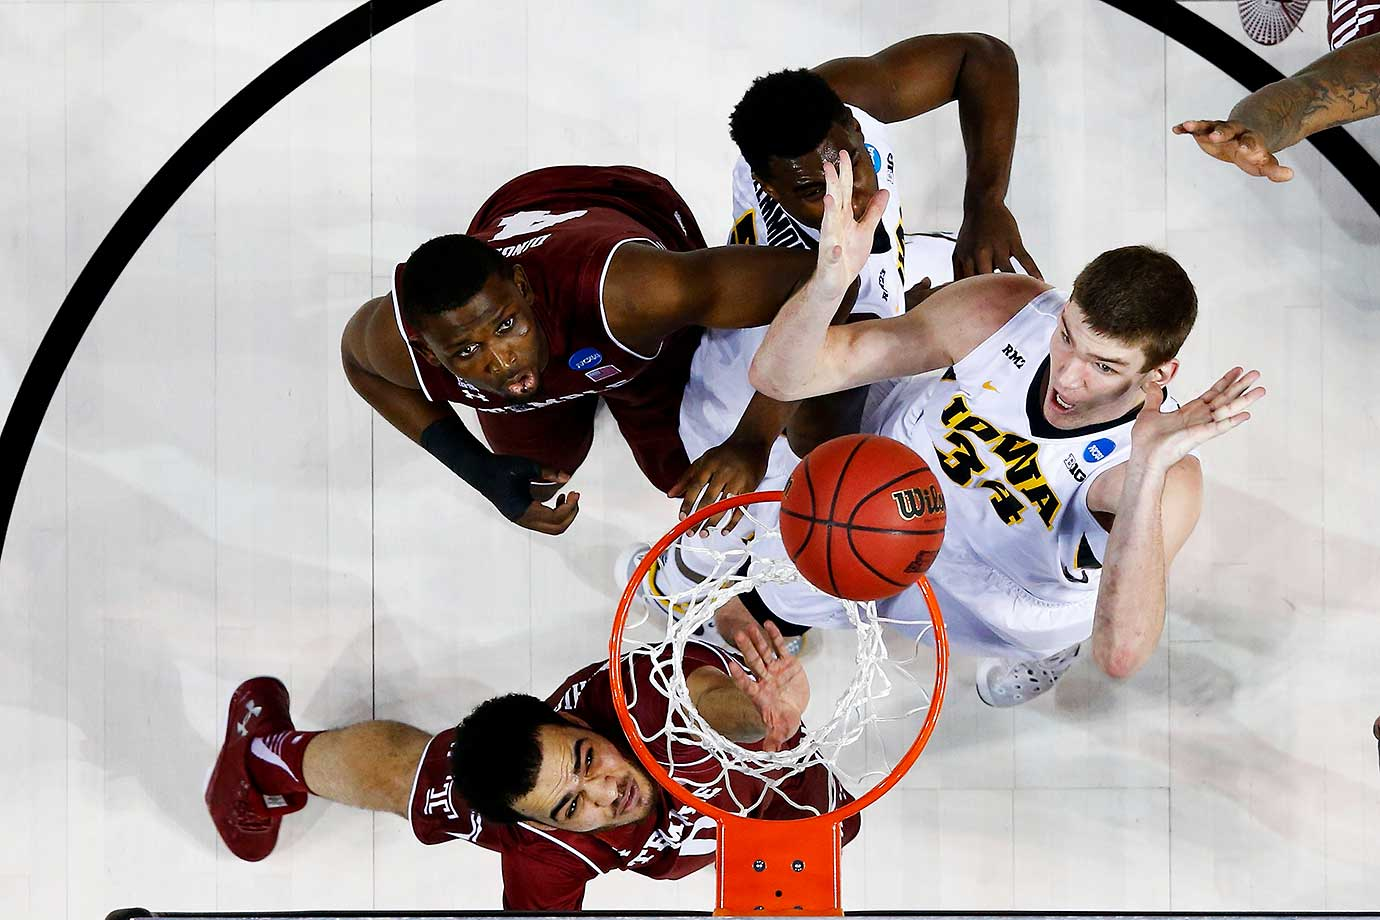 Adam Woodbury of the Iowa Hawkeyes shoots the game-winning basket in overtime to defeat the Temple Owls.